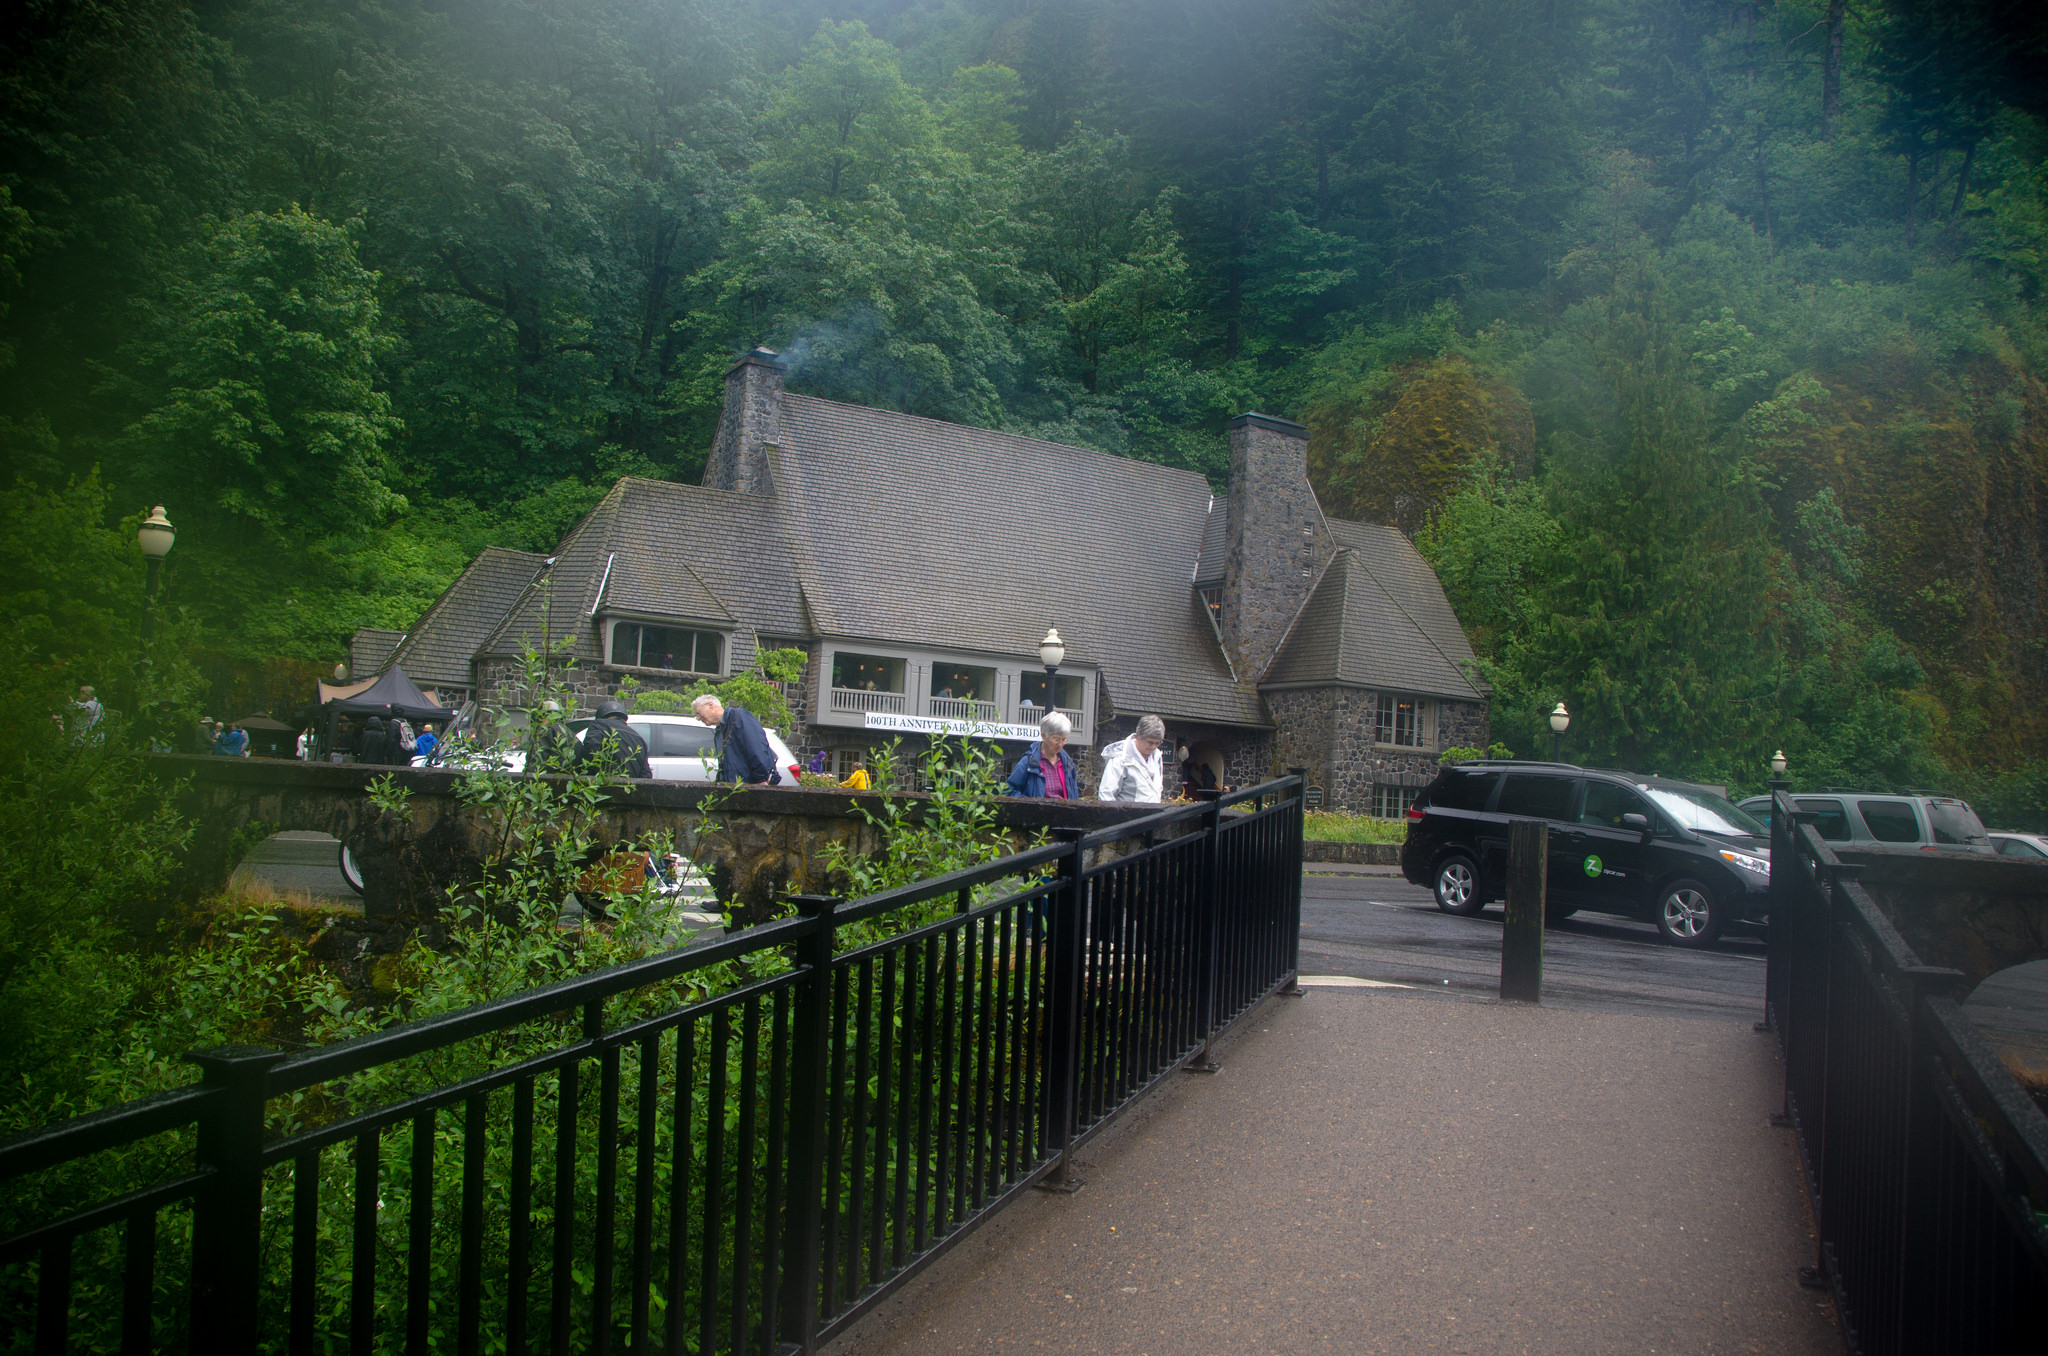 The fast-growing Eagle Creek Fire is threatening several historic sites and natural wonders in the Columbia River Gorge, including the Eagle Creek Campground - the oldest developed campground in the United States. (US FOREST SERVICE PHOTO)